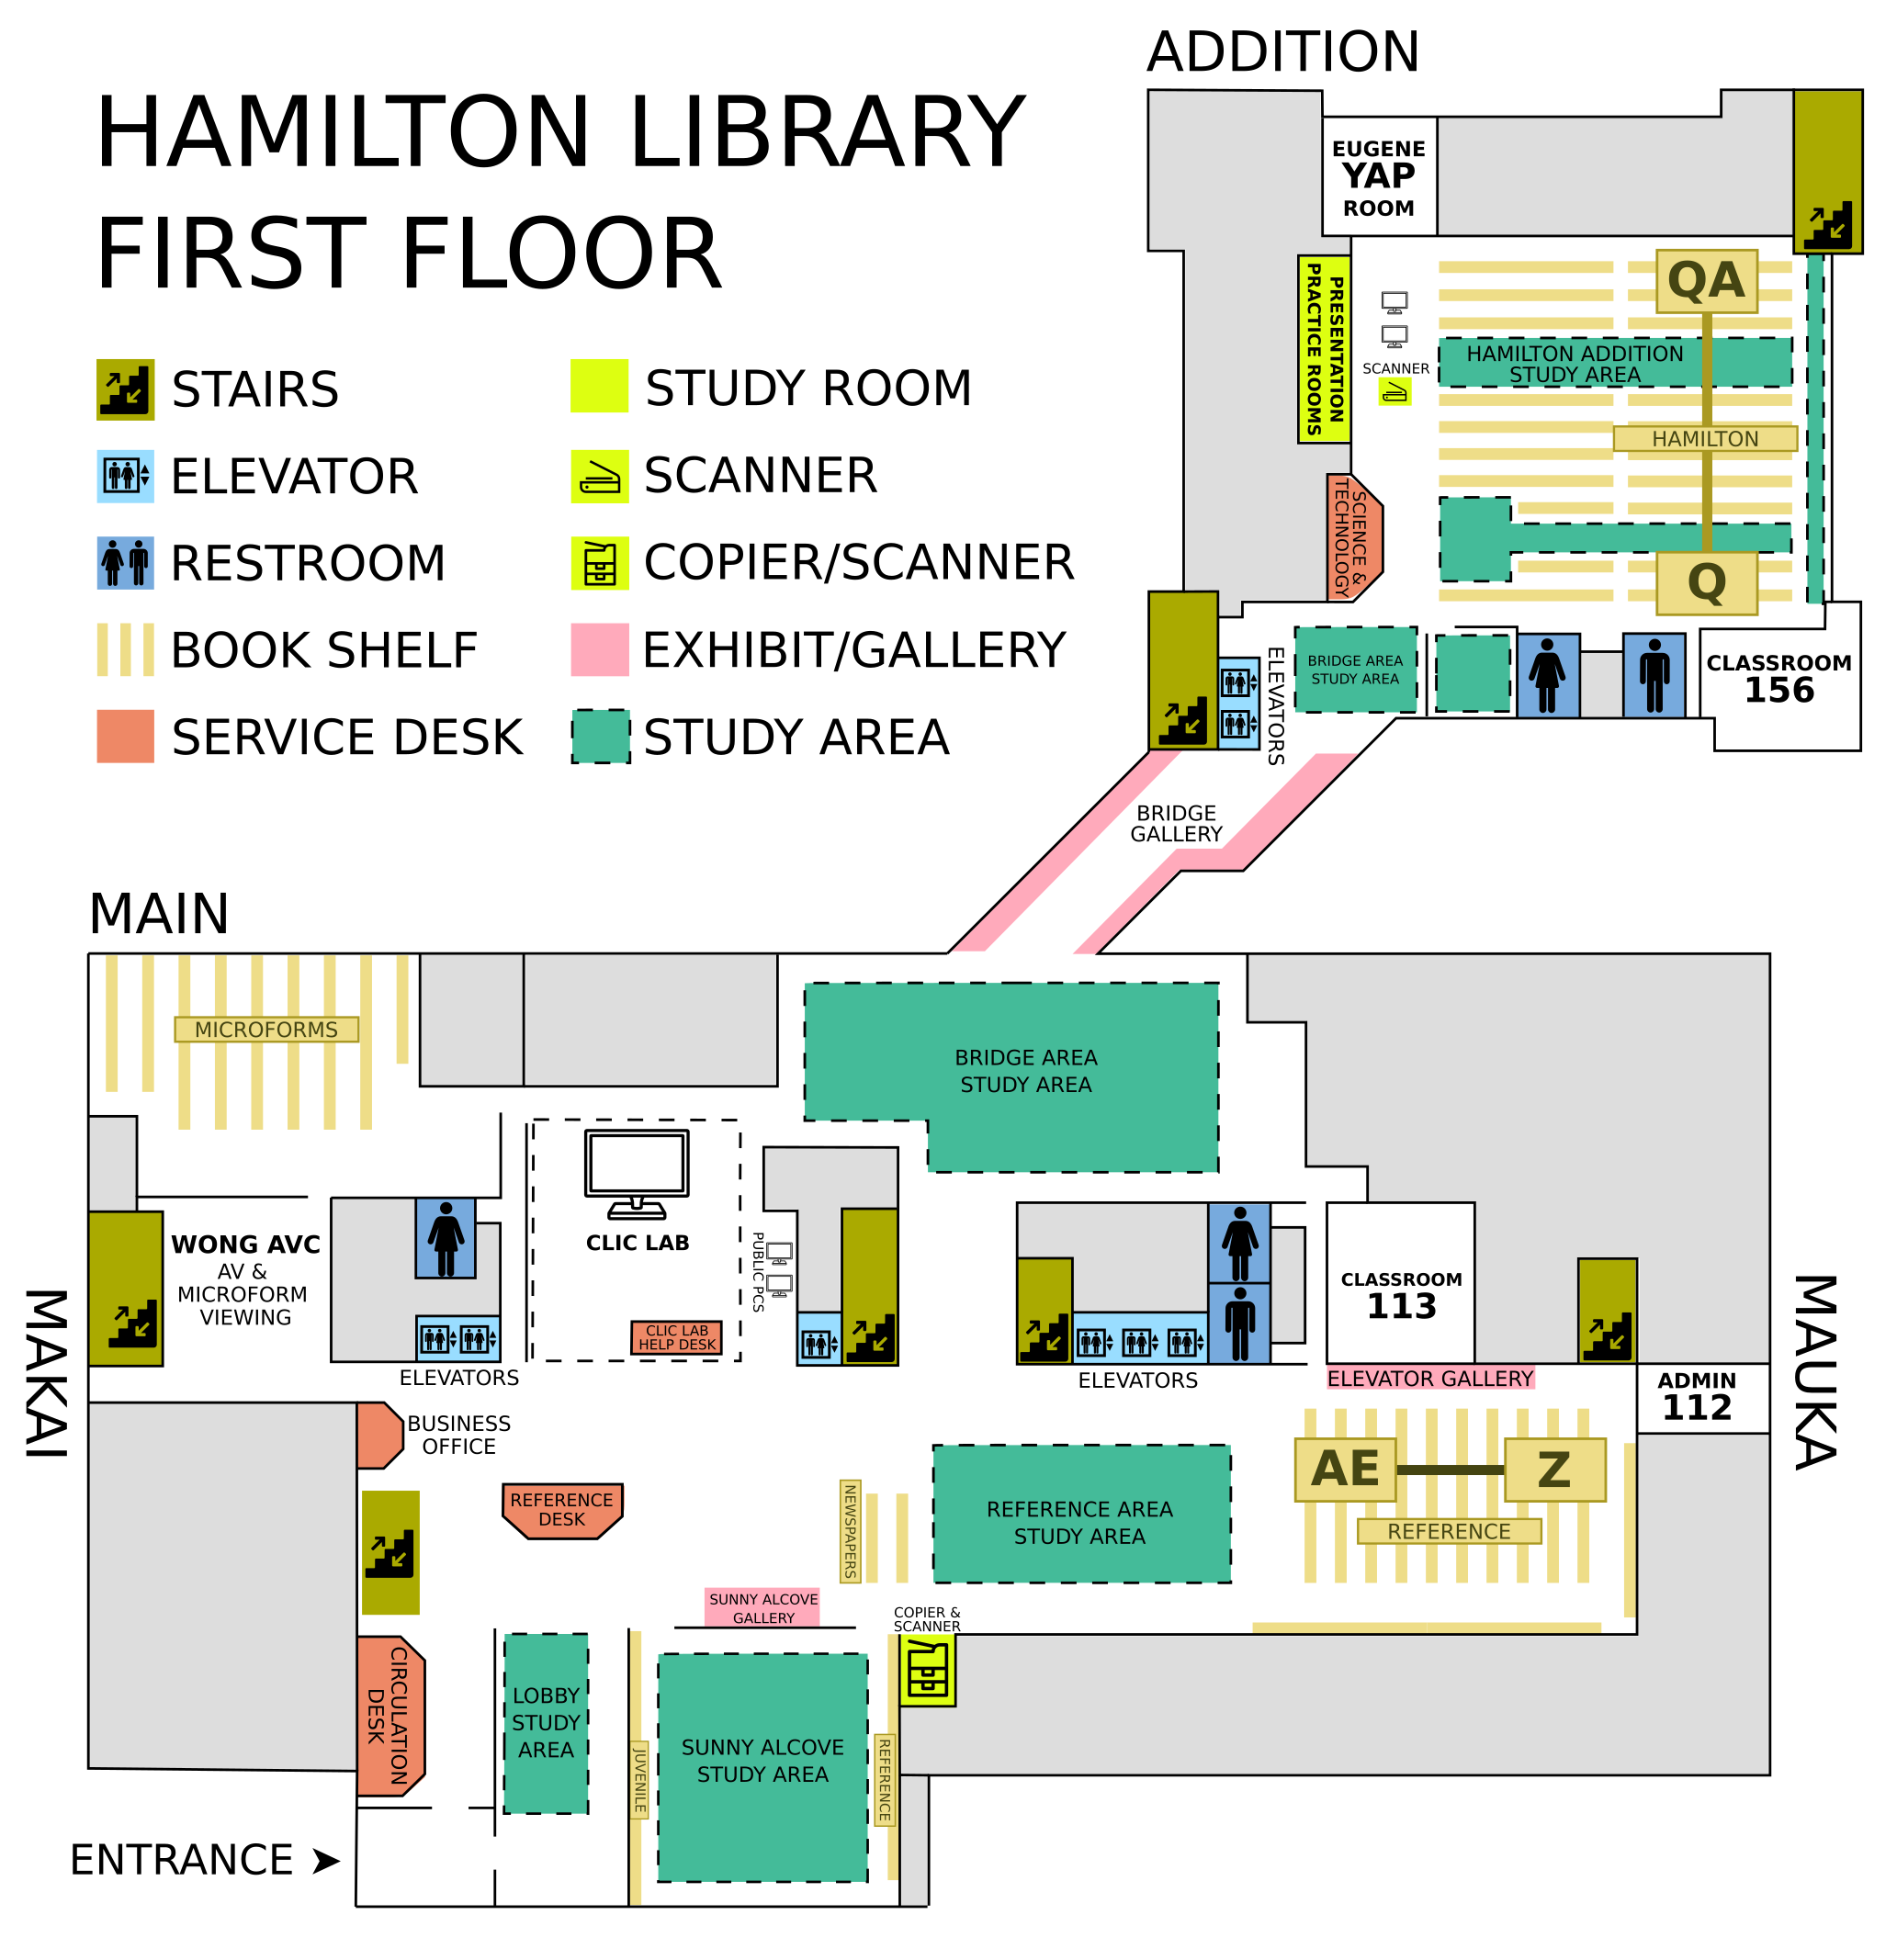 Hamilton first floor map